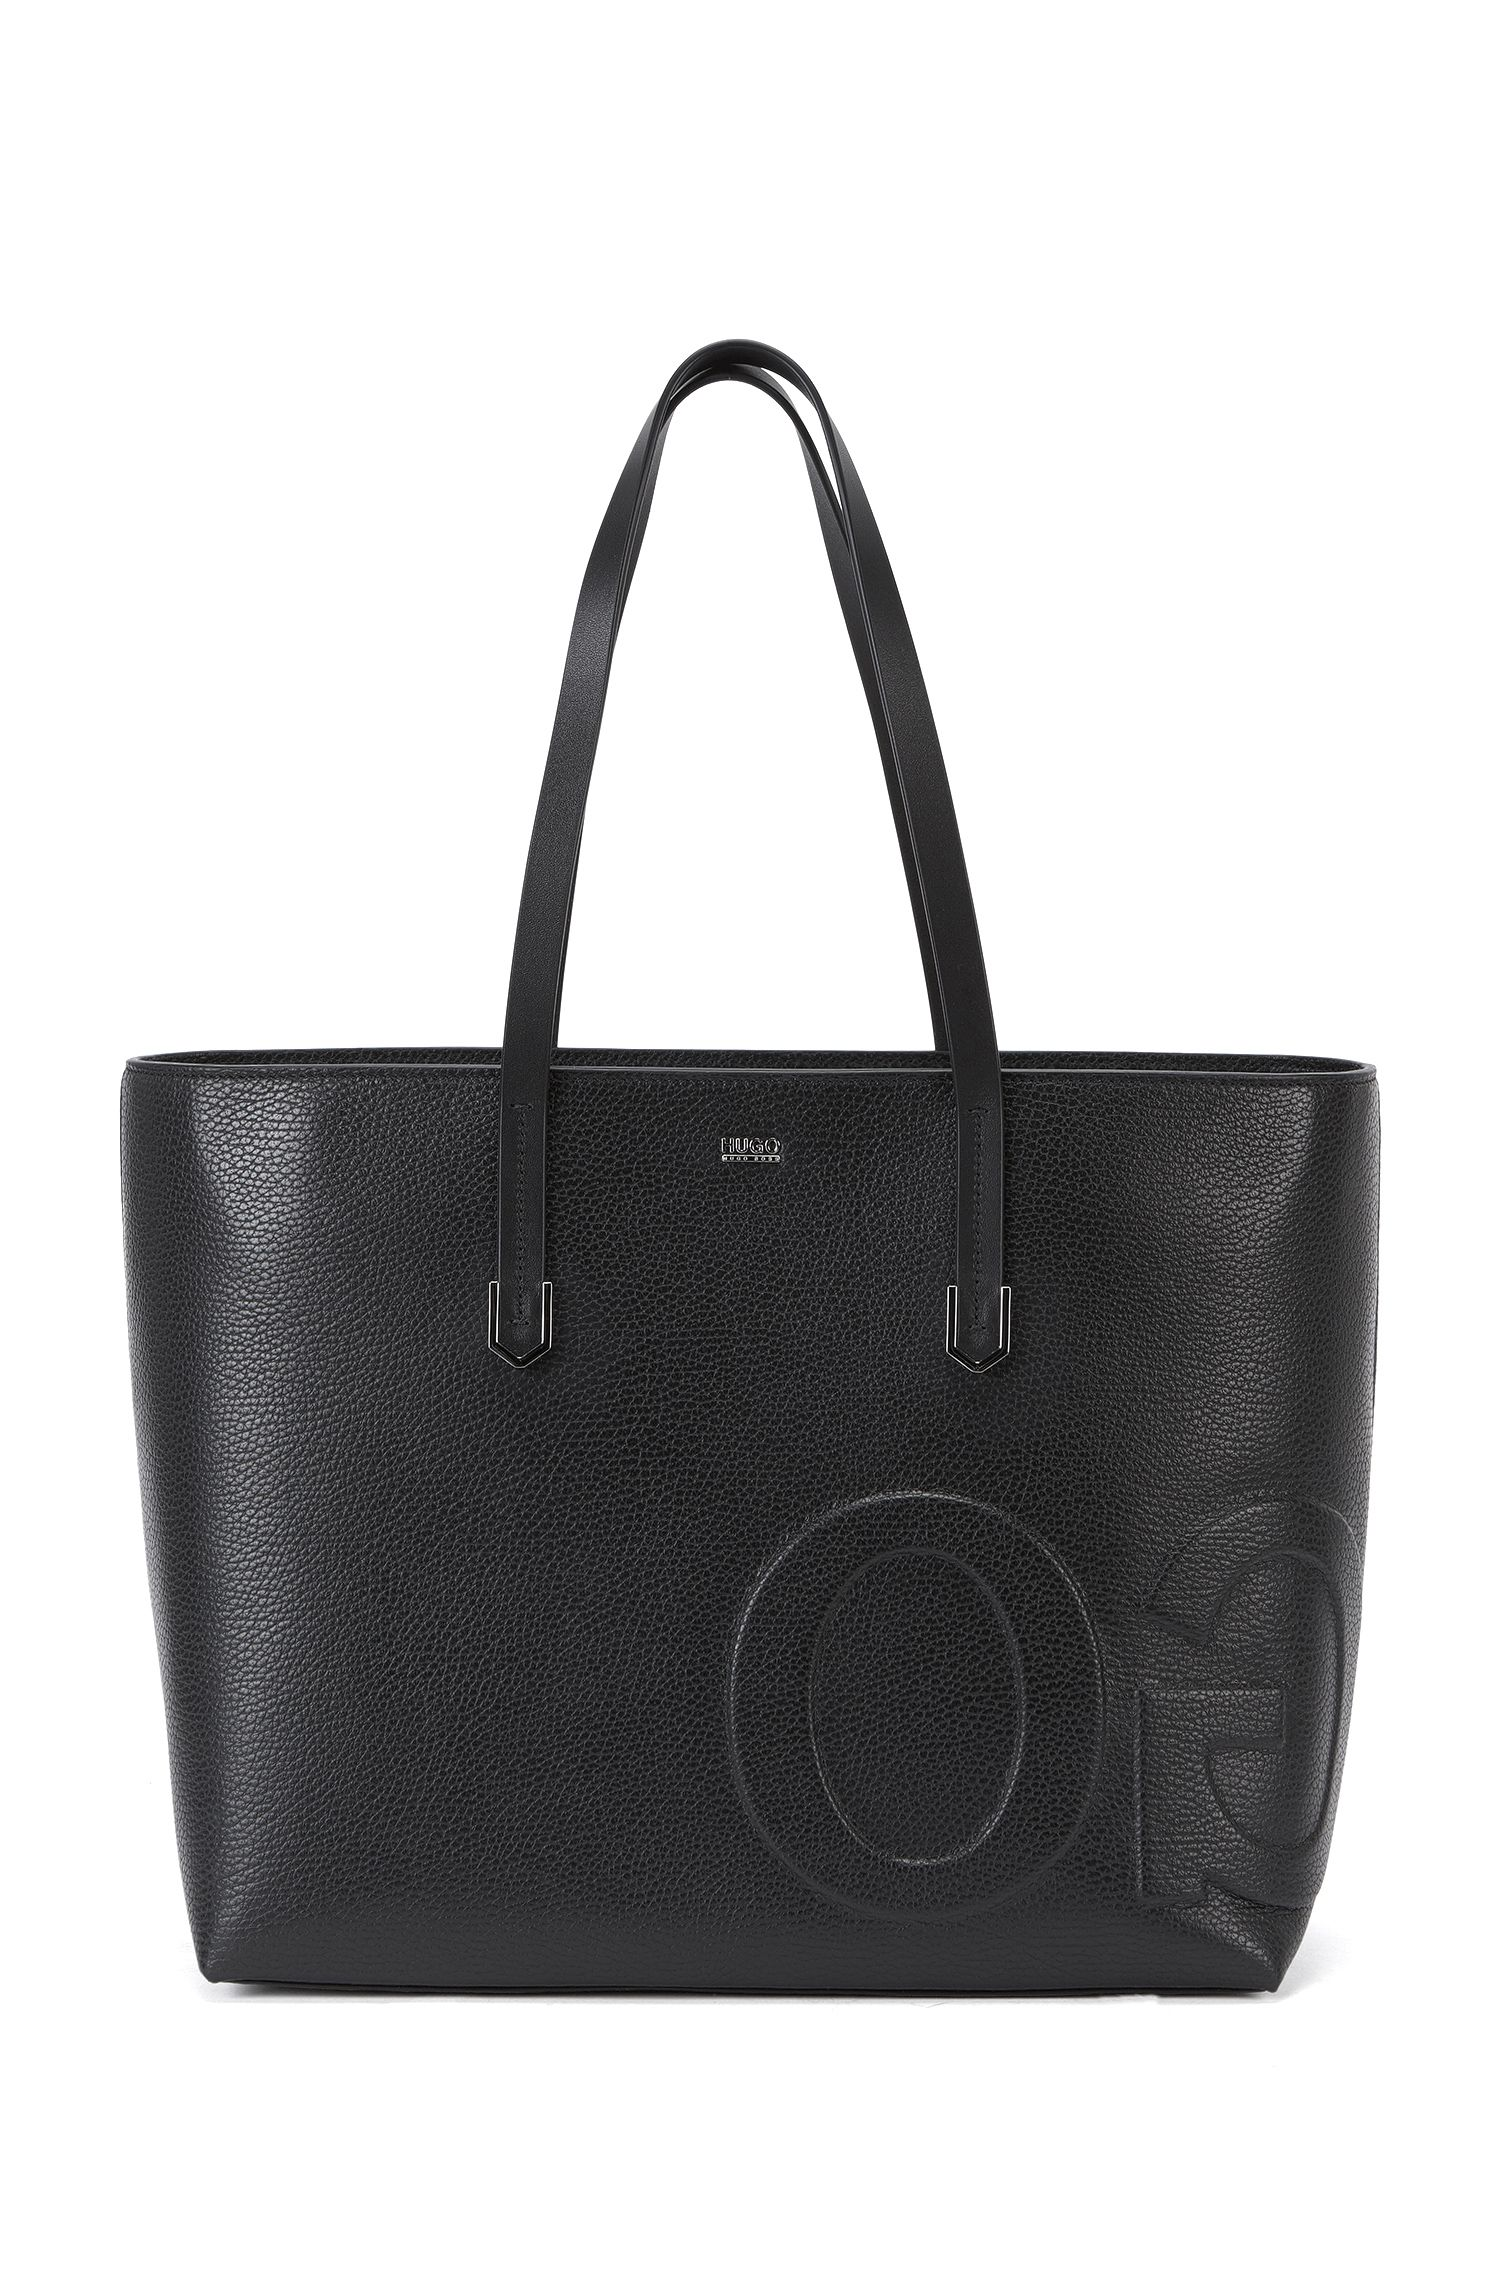 Leather tote bag with mirrored logo detail